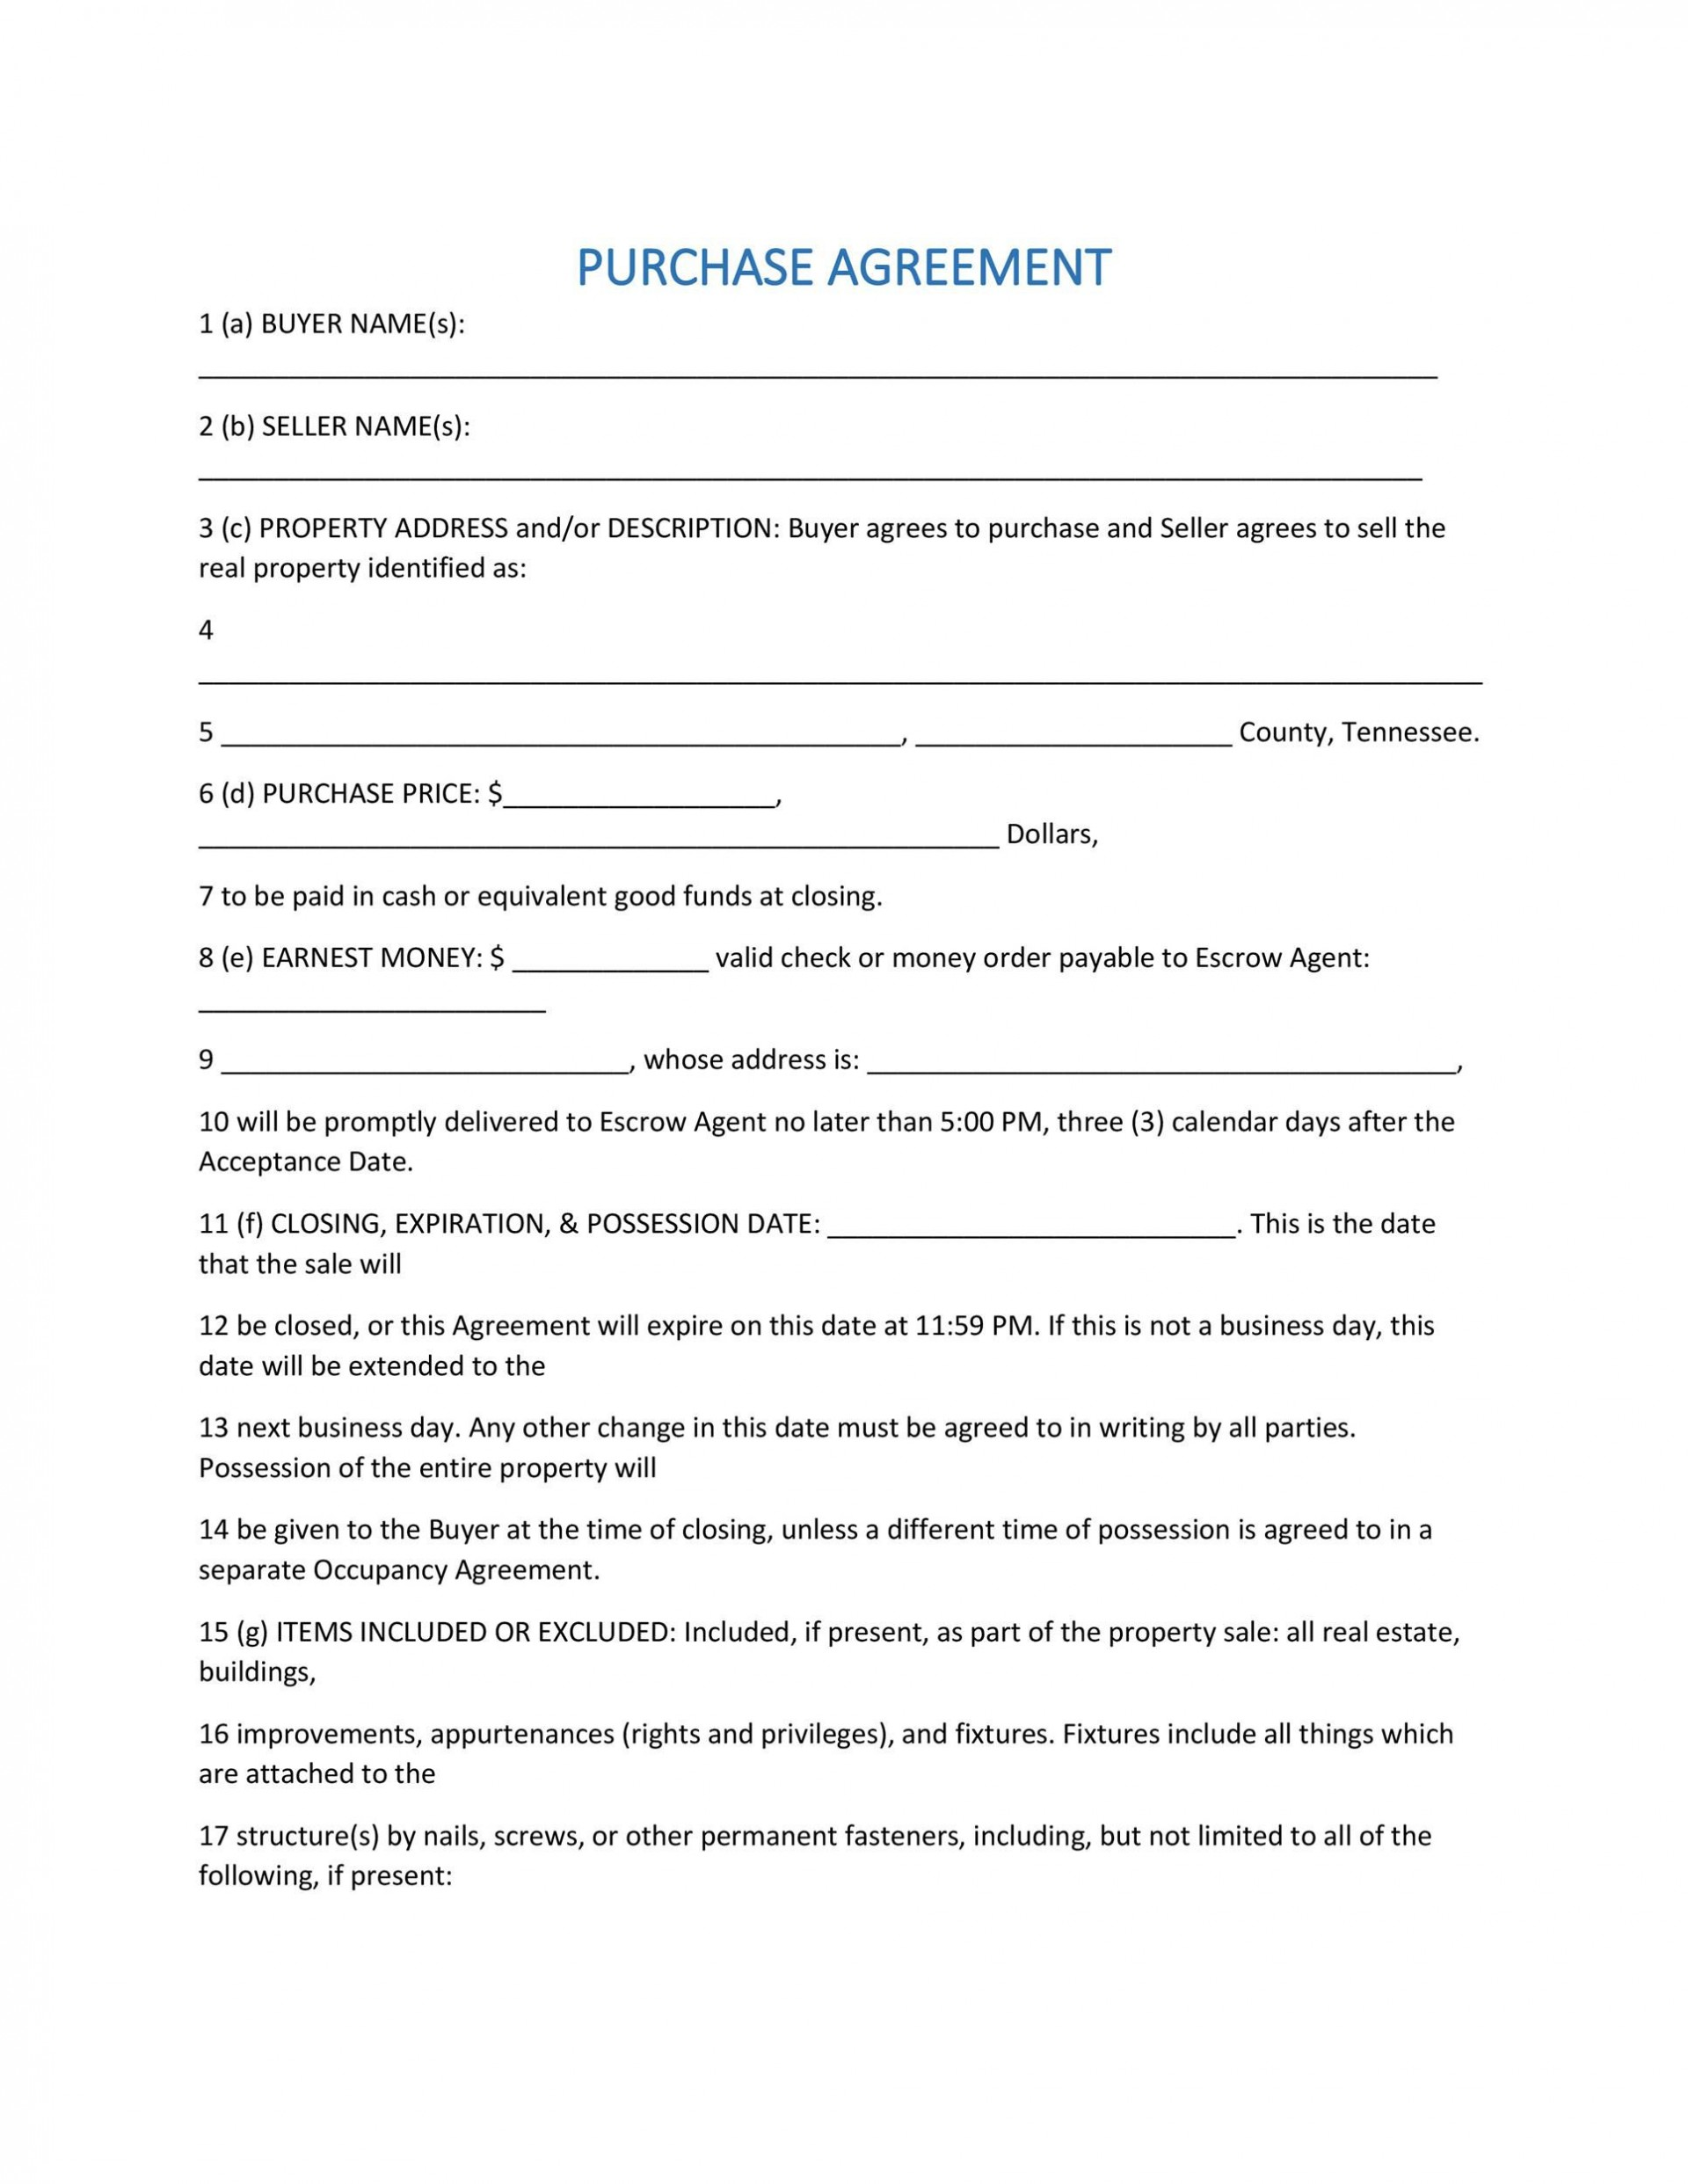 004 Sensational Purchase Agreement Template For Home Photo  Mobile1920